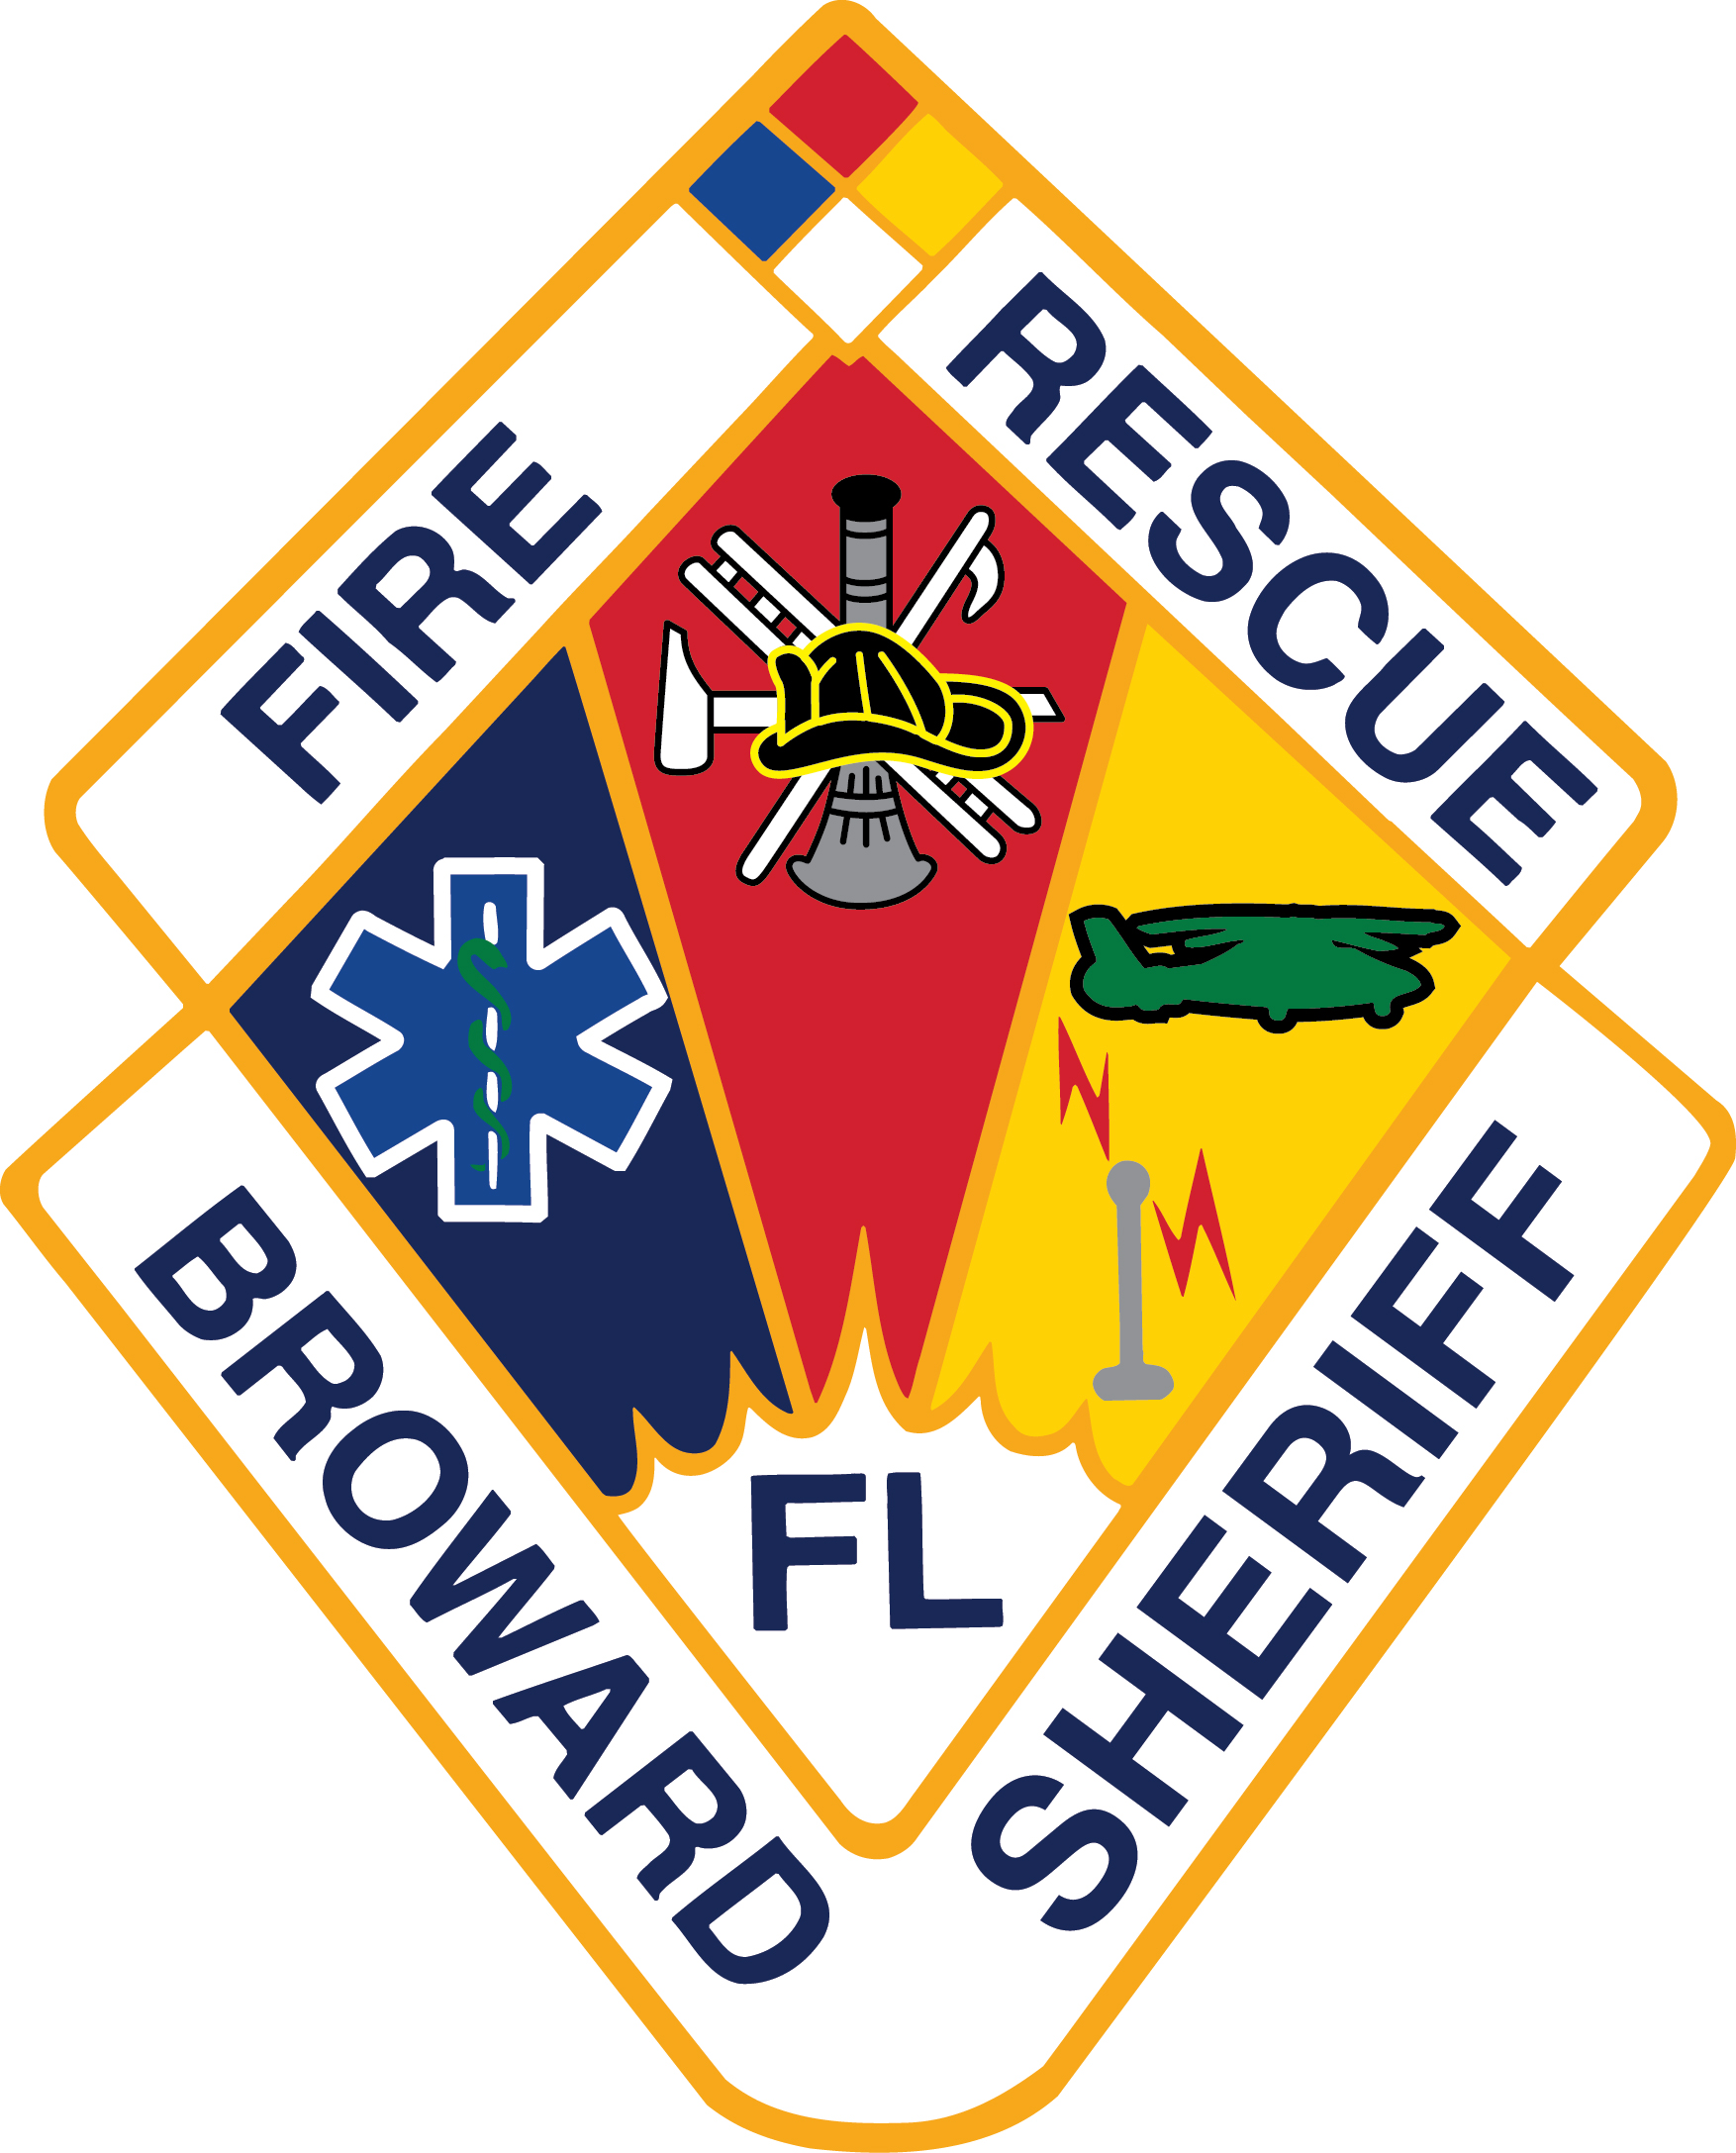 Broward Countty Fire Rescue